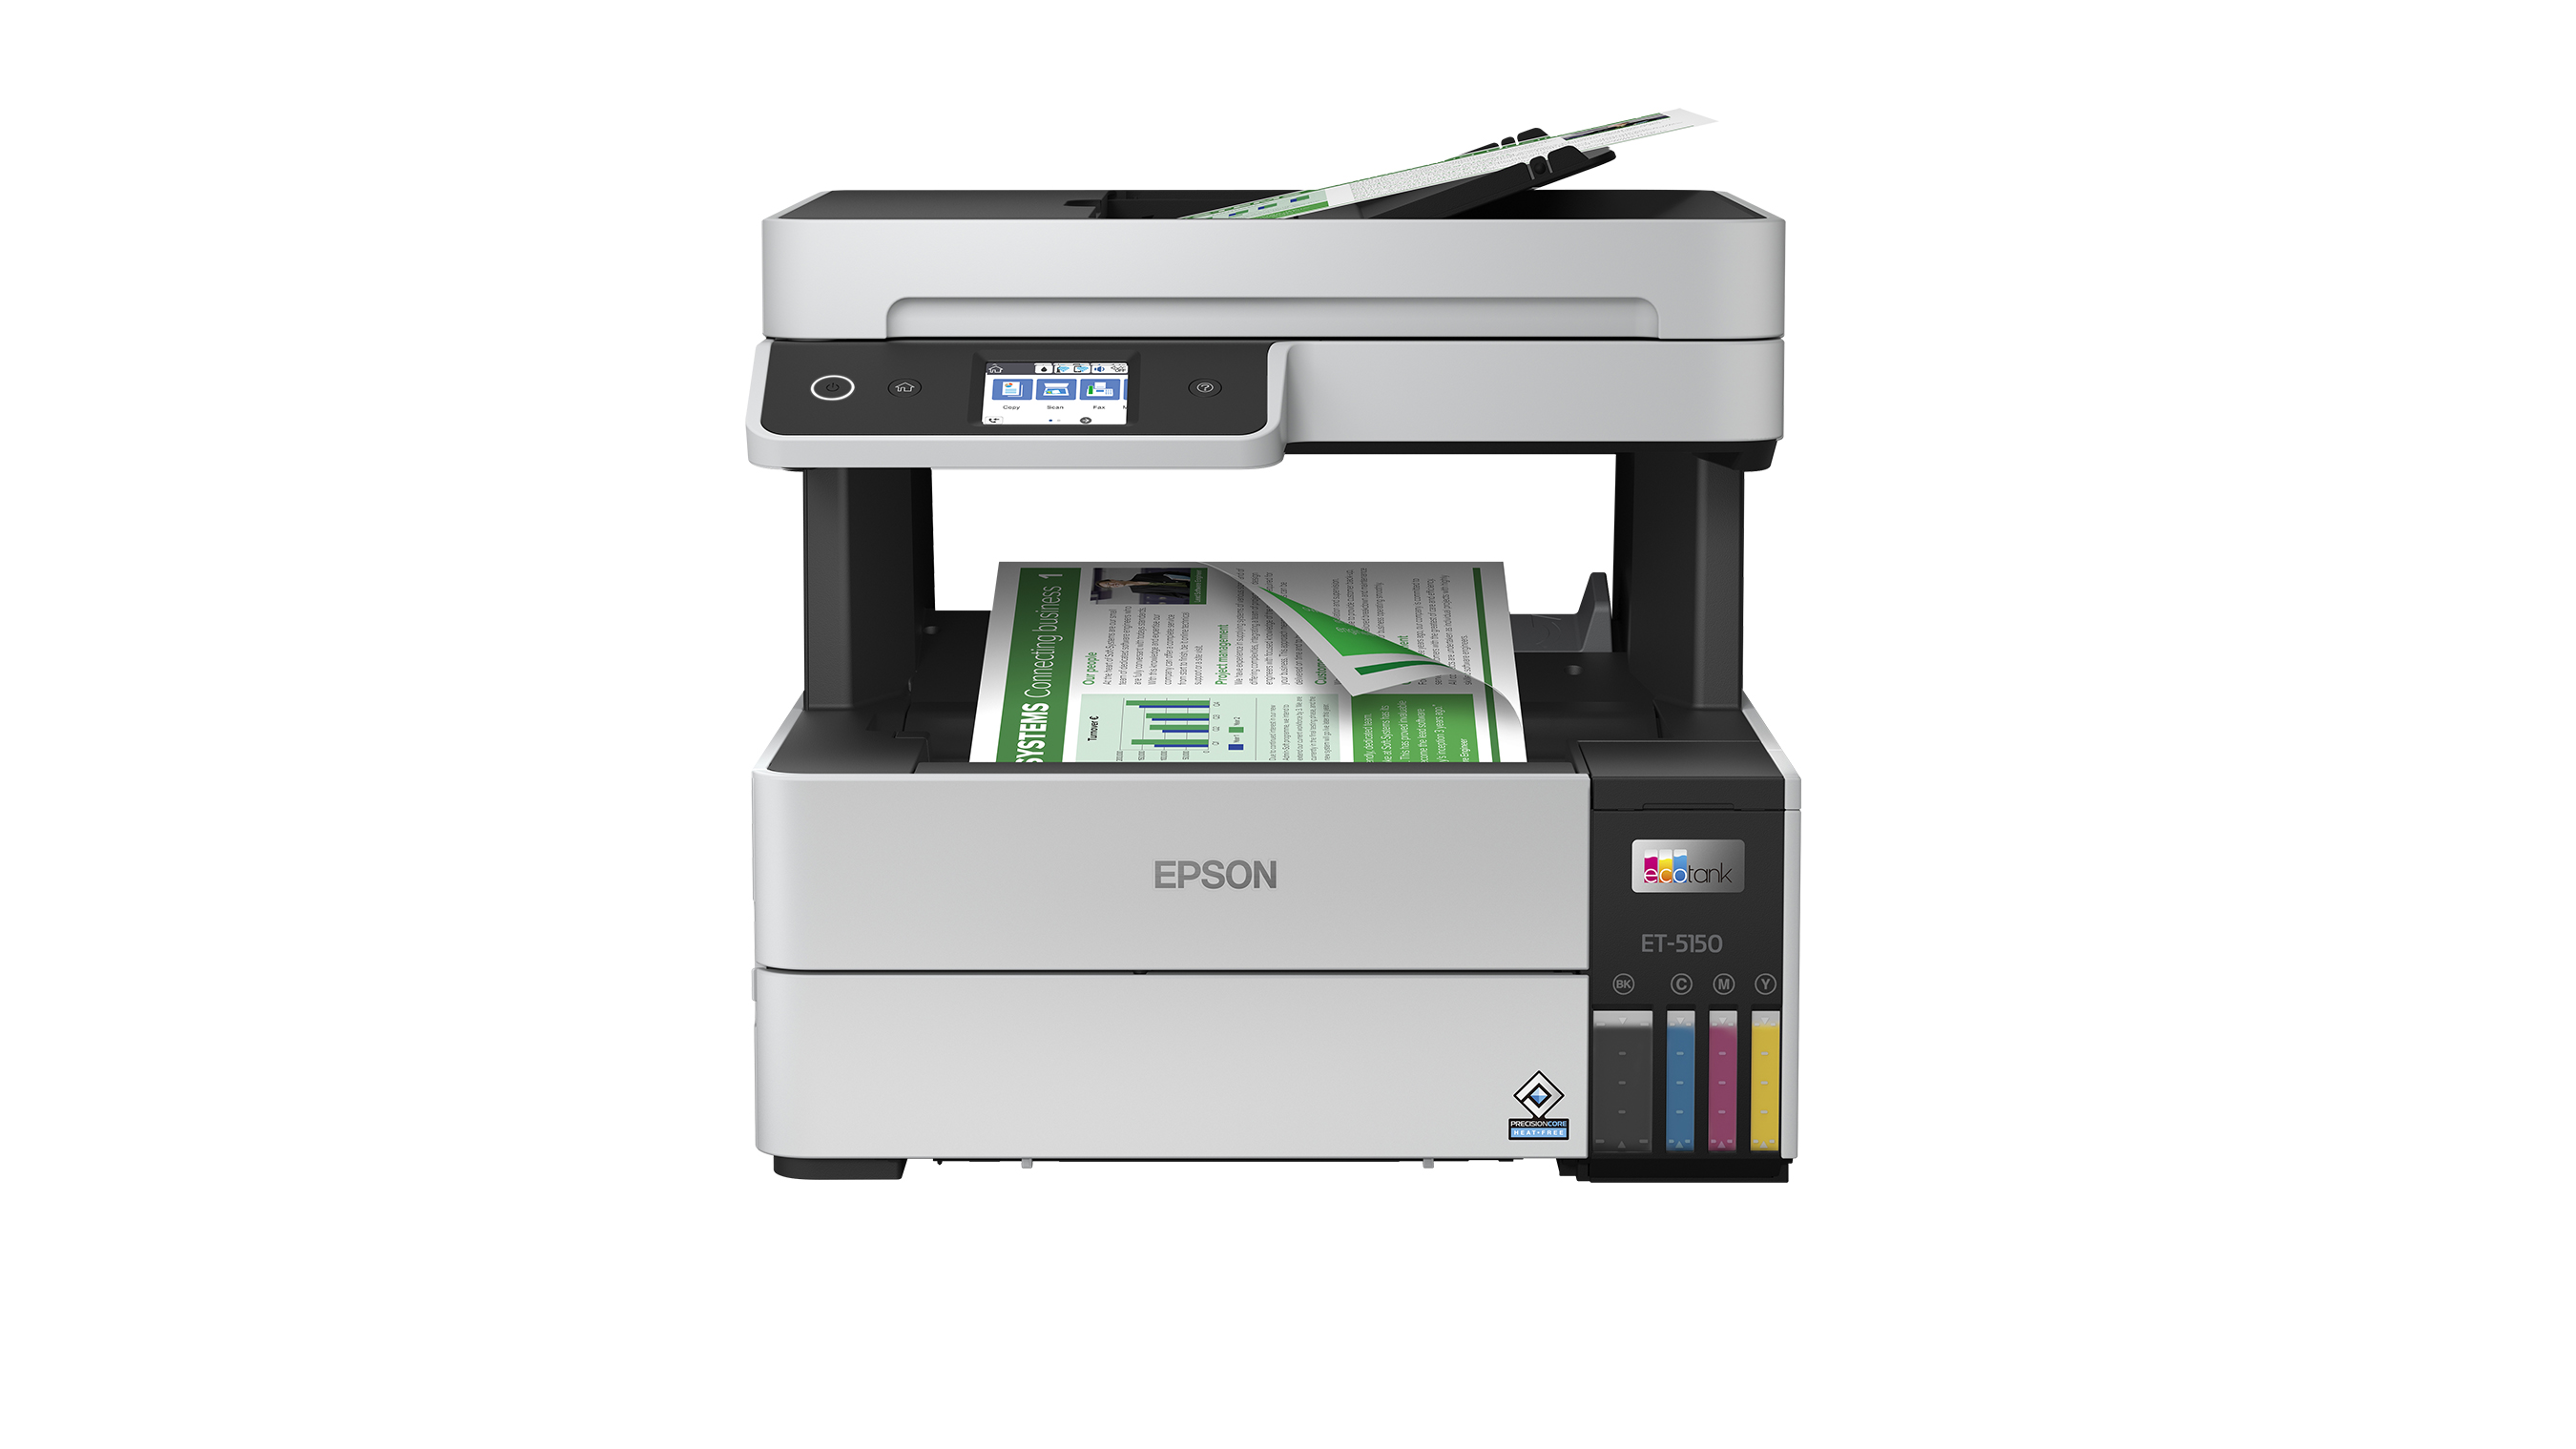 The EcoTank Pro ET-5150 delivers professional-quality prints face down for greater privacy and is a reliable solution for demanding, high-volume business printing.